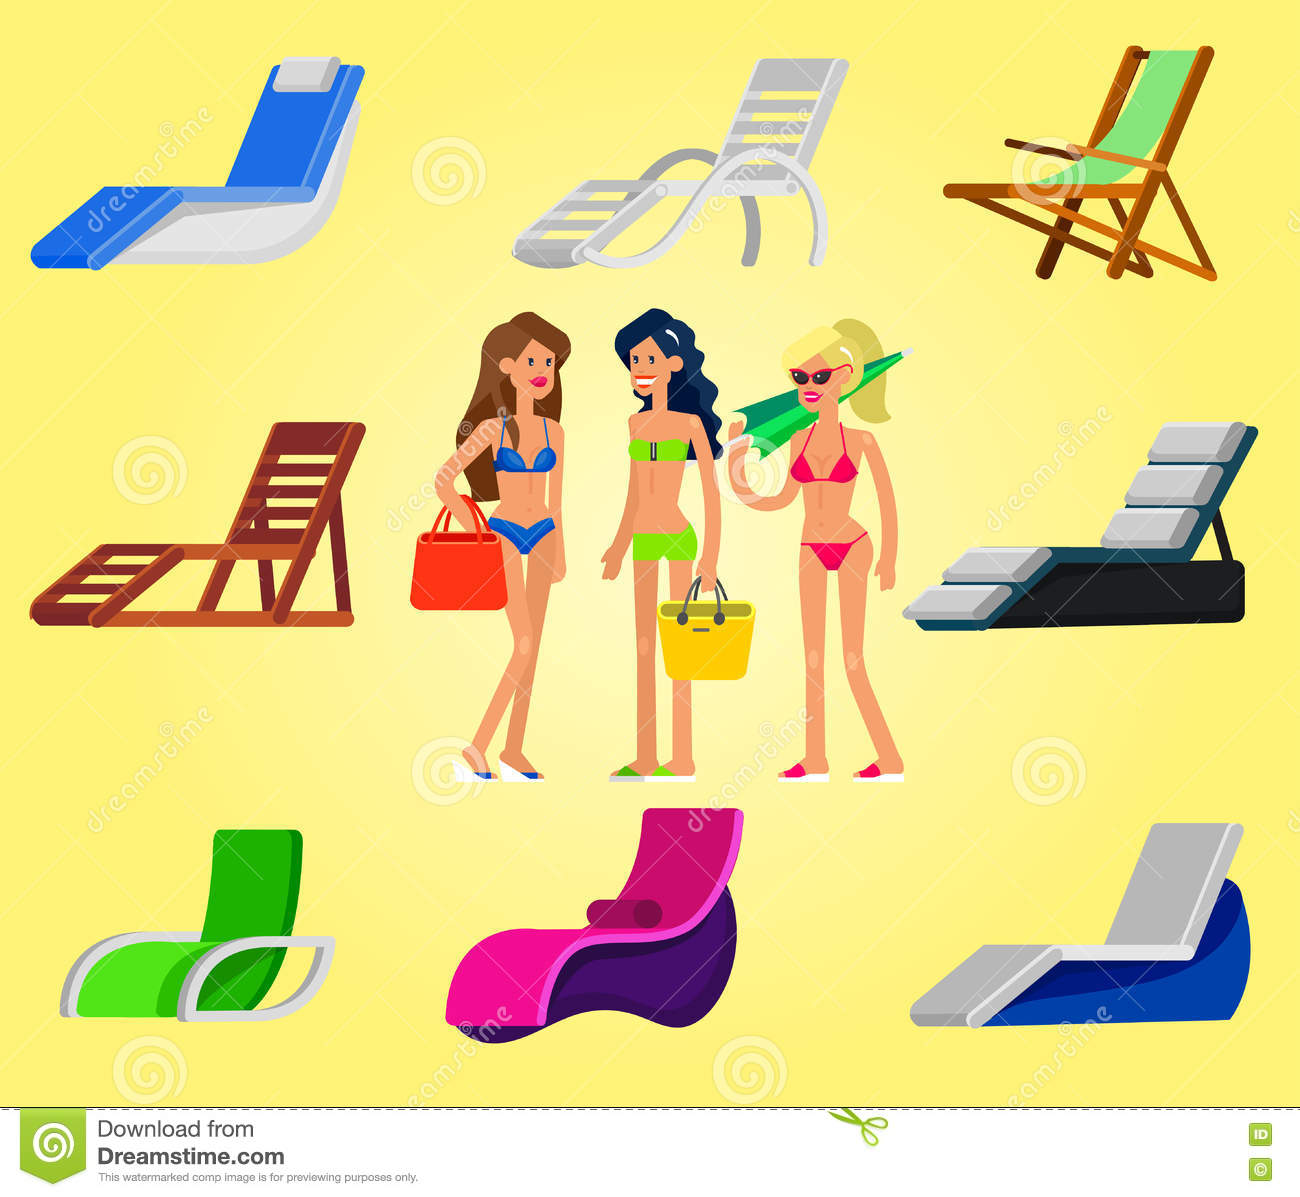 Wooden beach chaise longue stock vector. Illustration of accessory on chaise sofa sleeper, chaise recliner chair, chaise furniture,